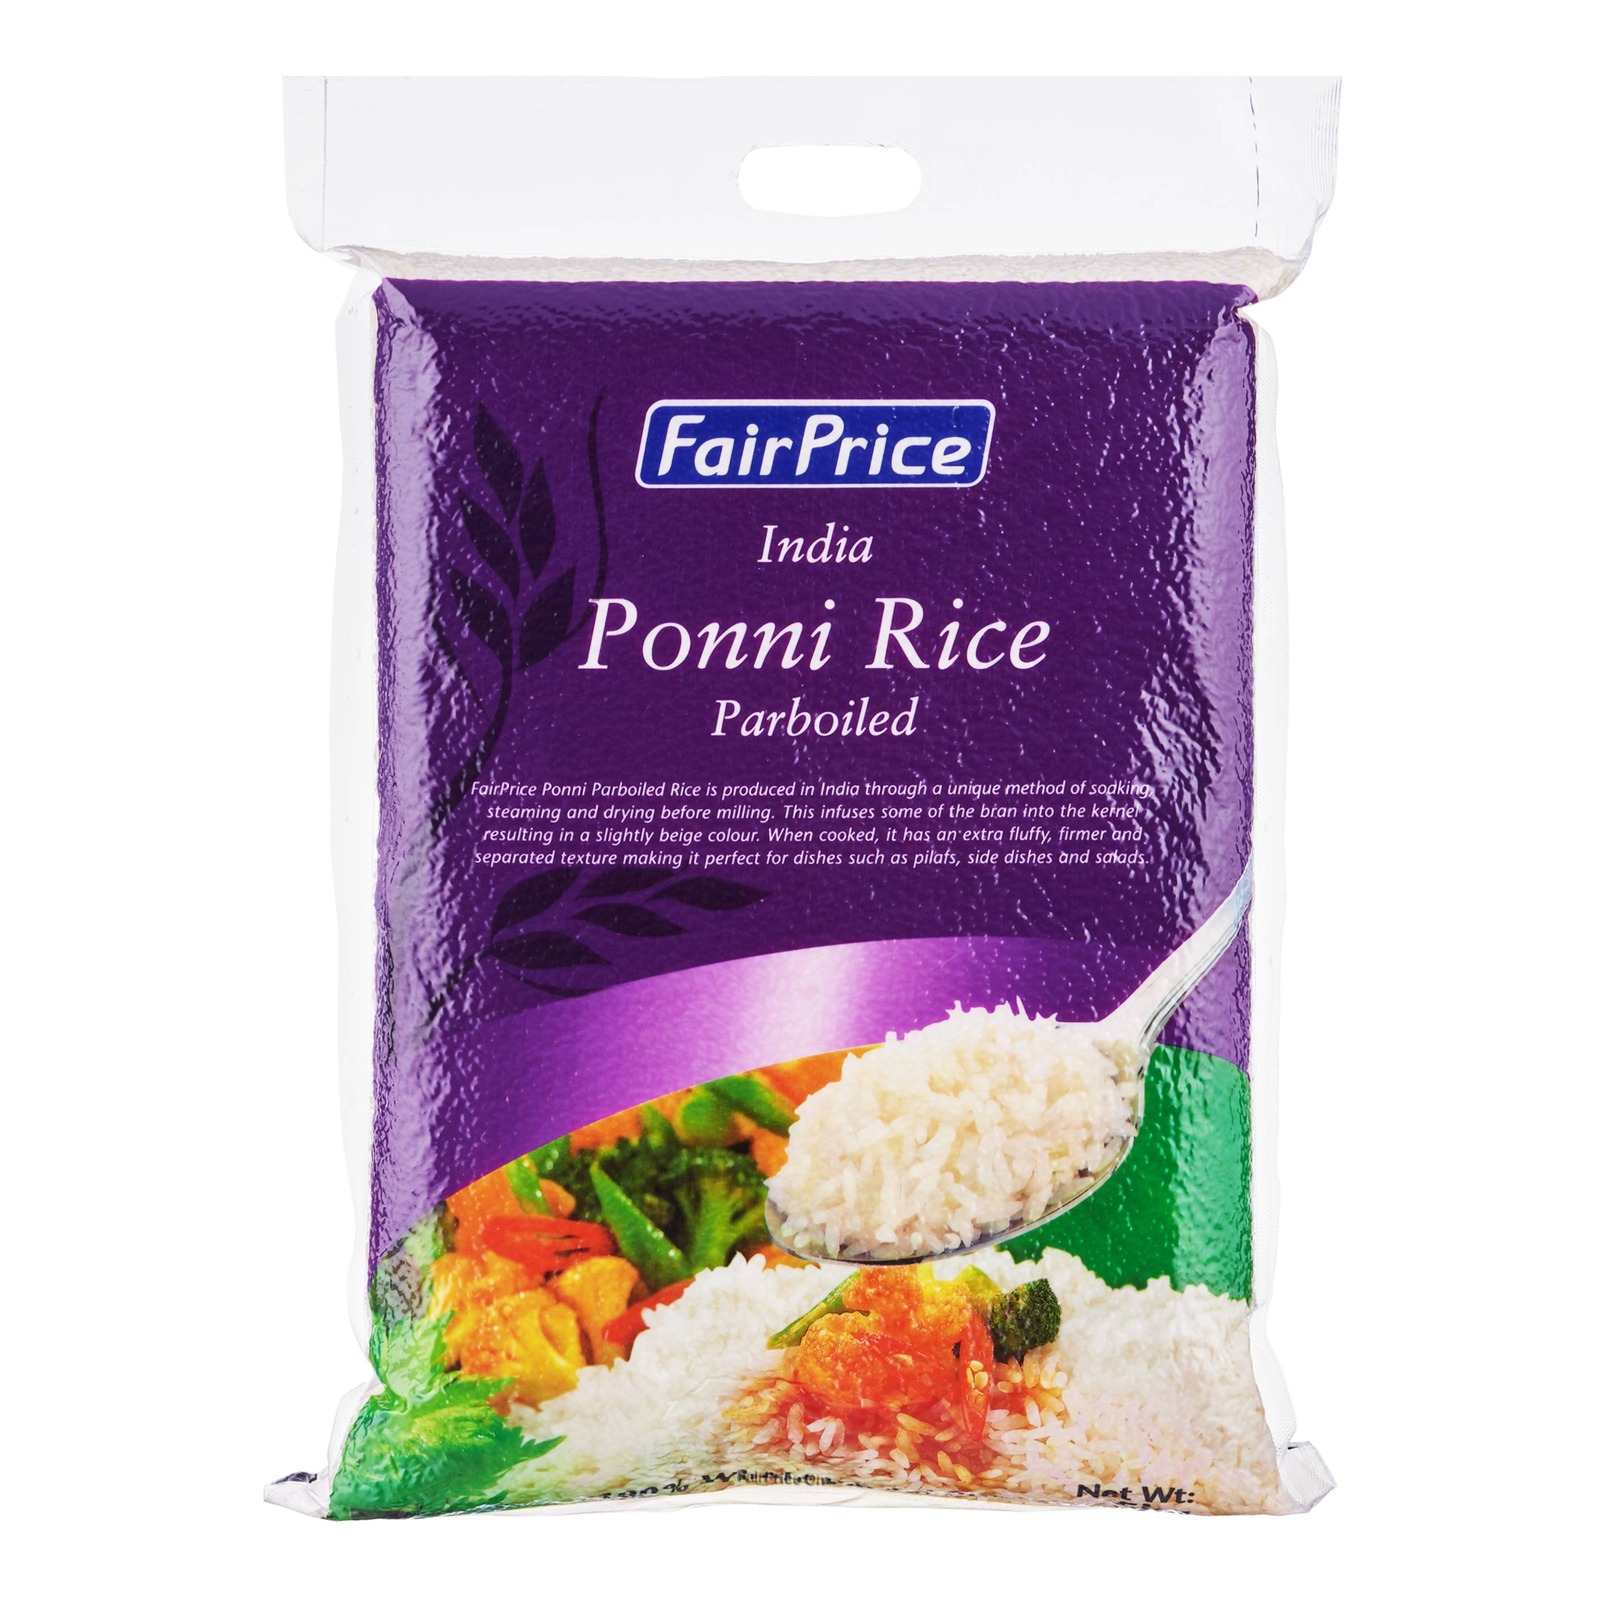 FairPrice India Ponni Rice - Parboiled